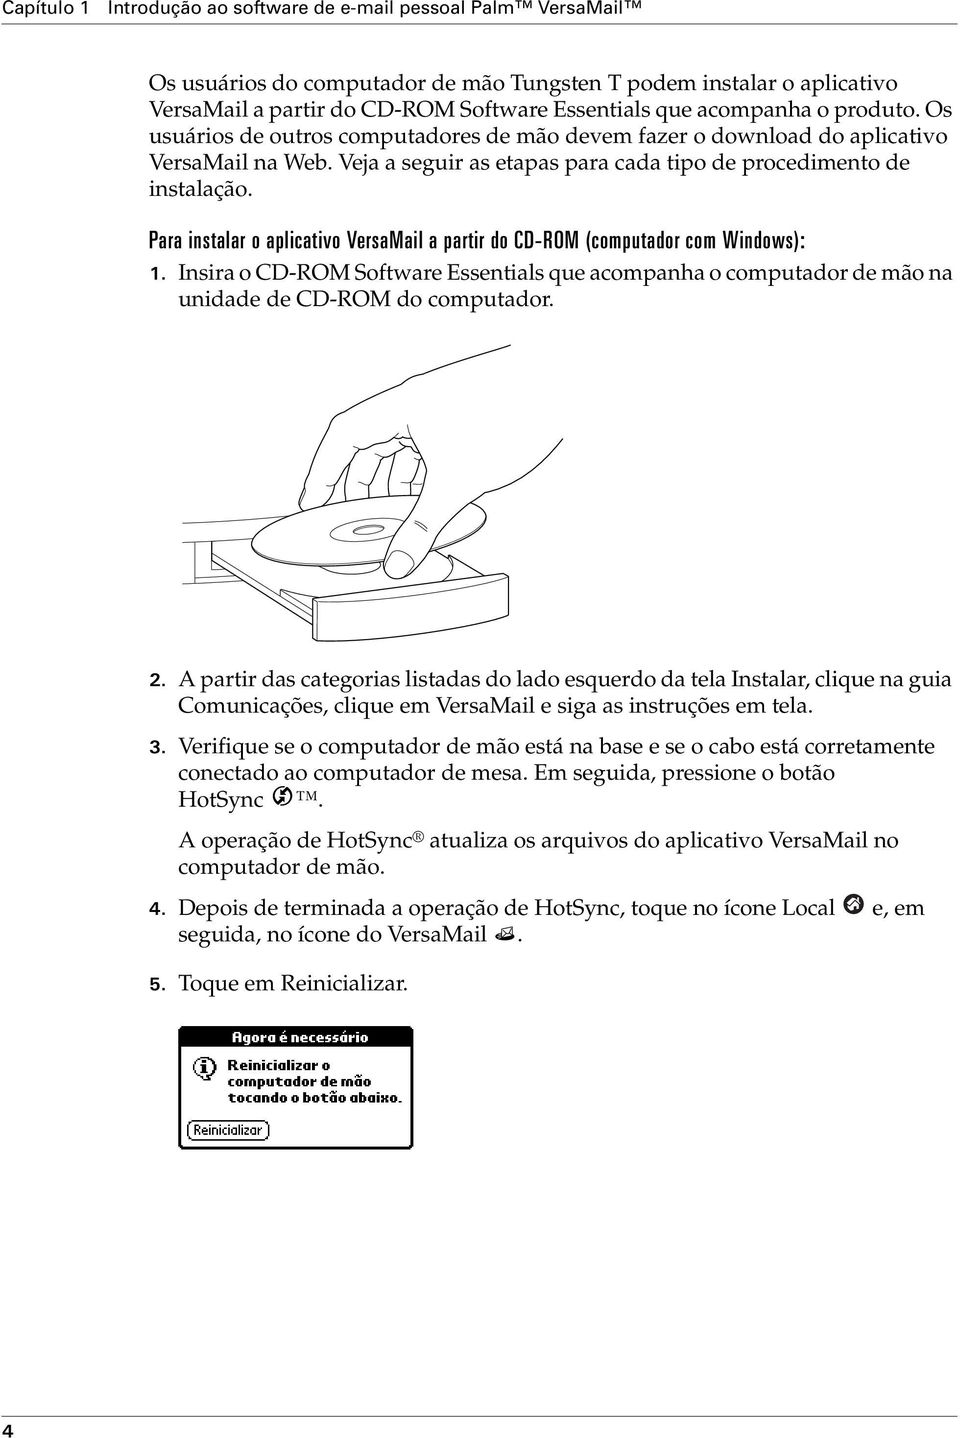 Para instalar o aplicativo VersaMail a partir do CD-ROM (computador com Windows): 1. Insira o CD-ROM Software Essentials que acompanha o computador de mão na unidade de CD-ROM do computador. 2.